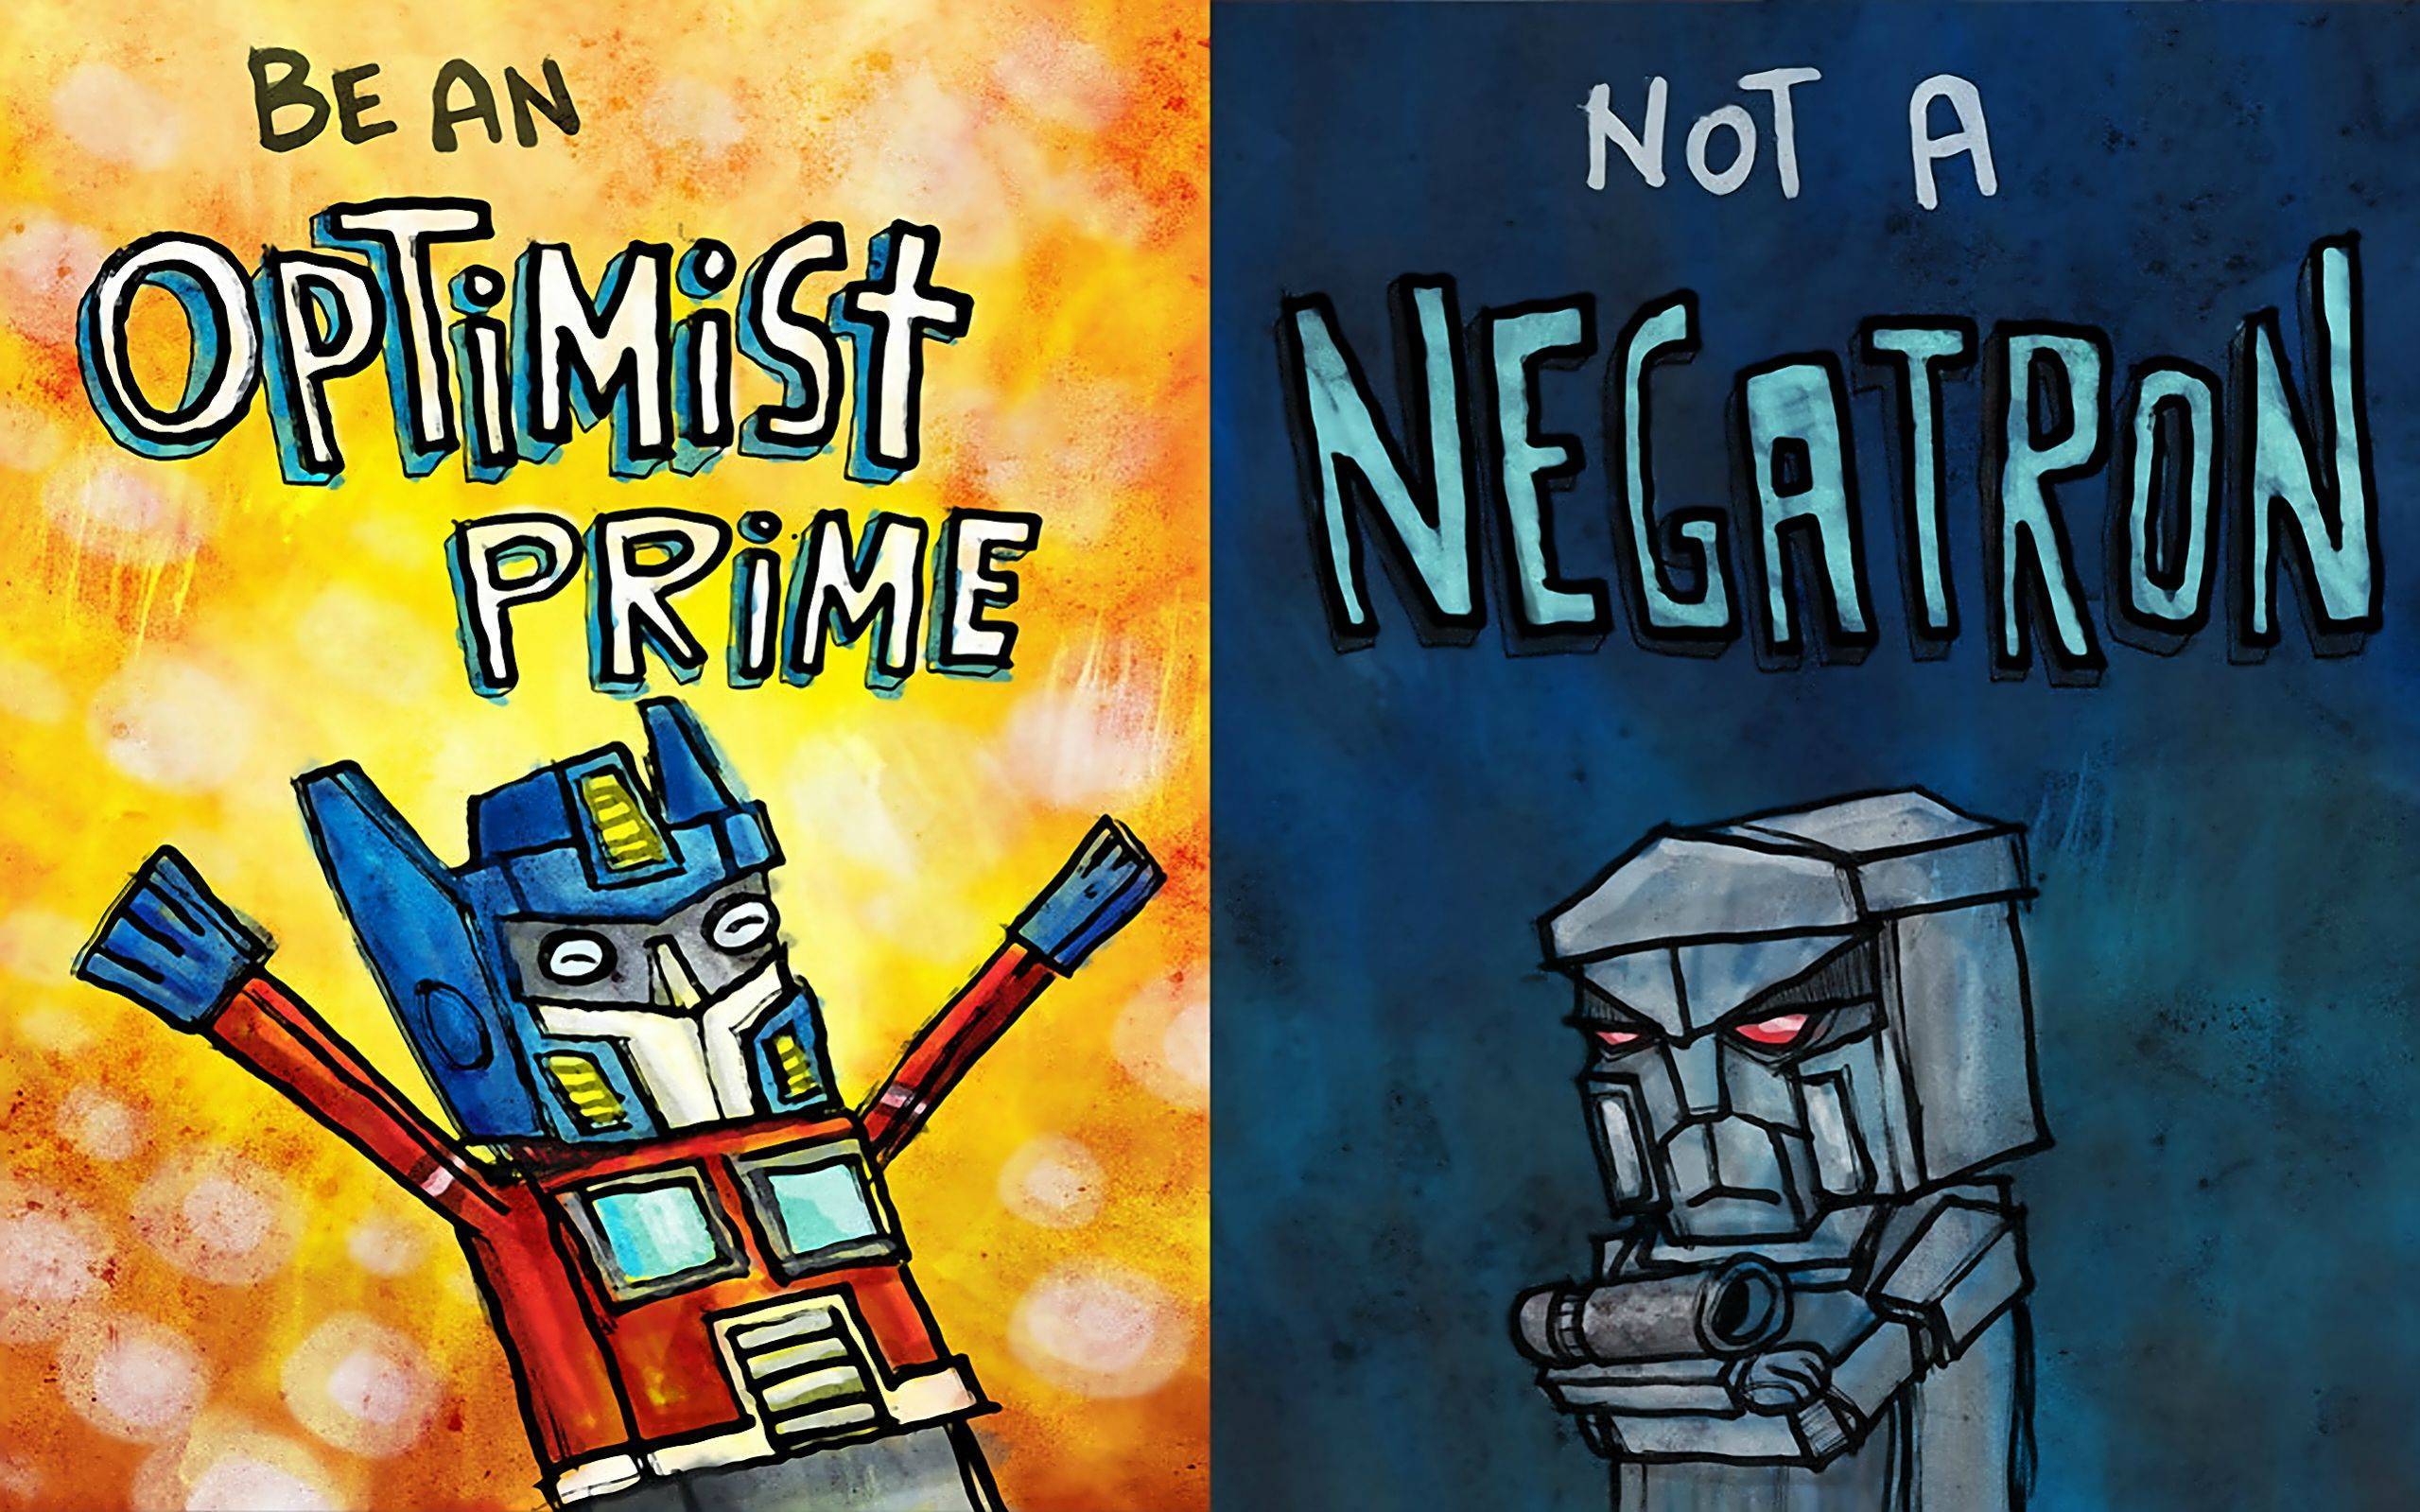 [Image] Be an optimist prime not a negatron